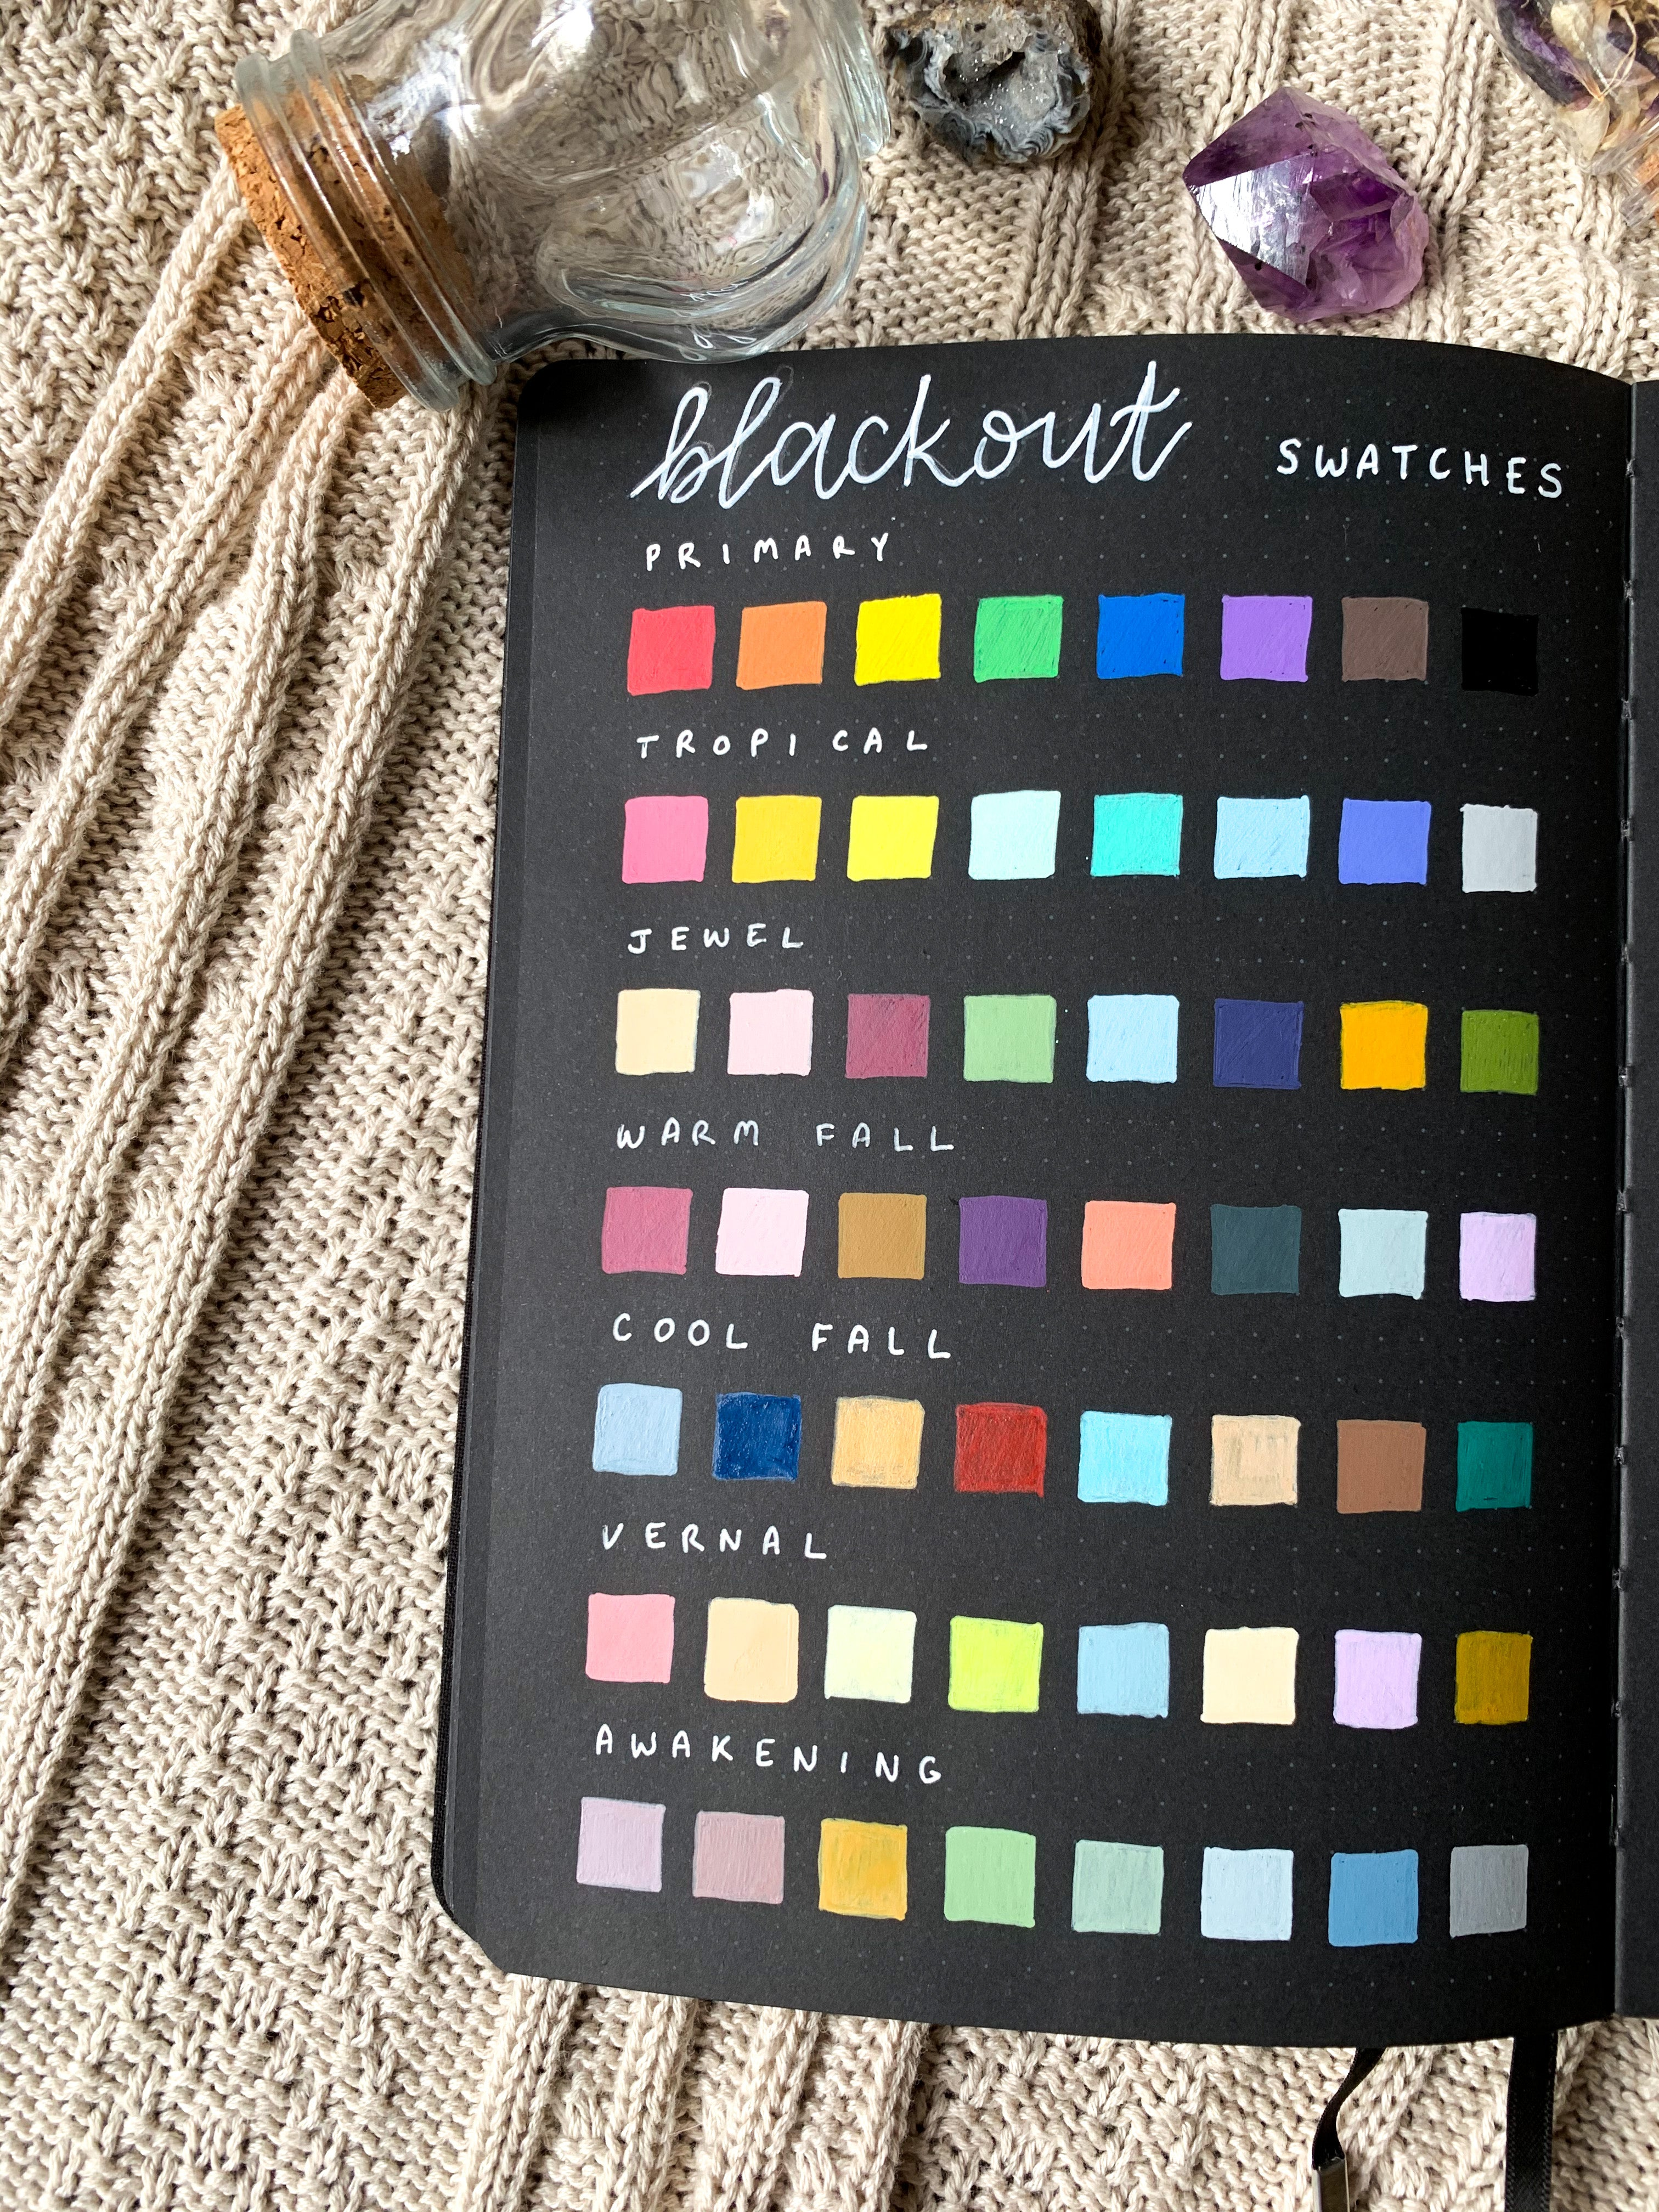 Acrylograph Swatches on Blackout Notbook